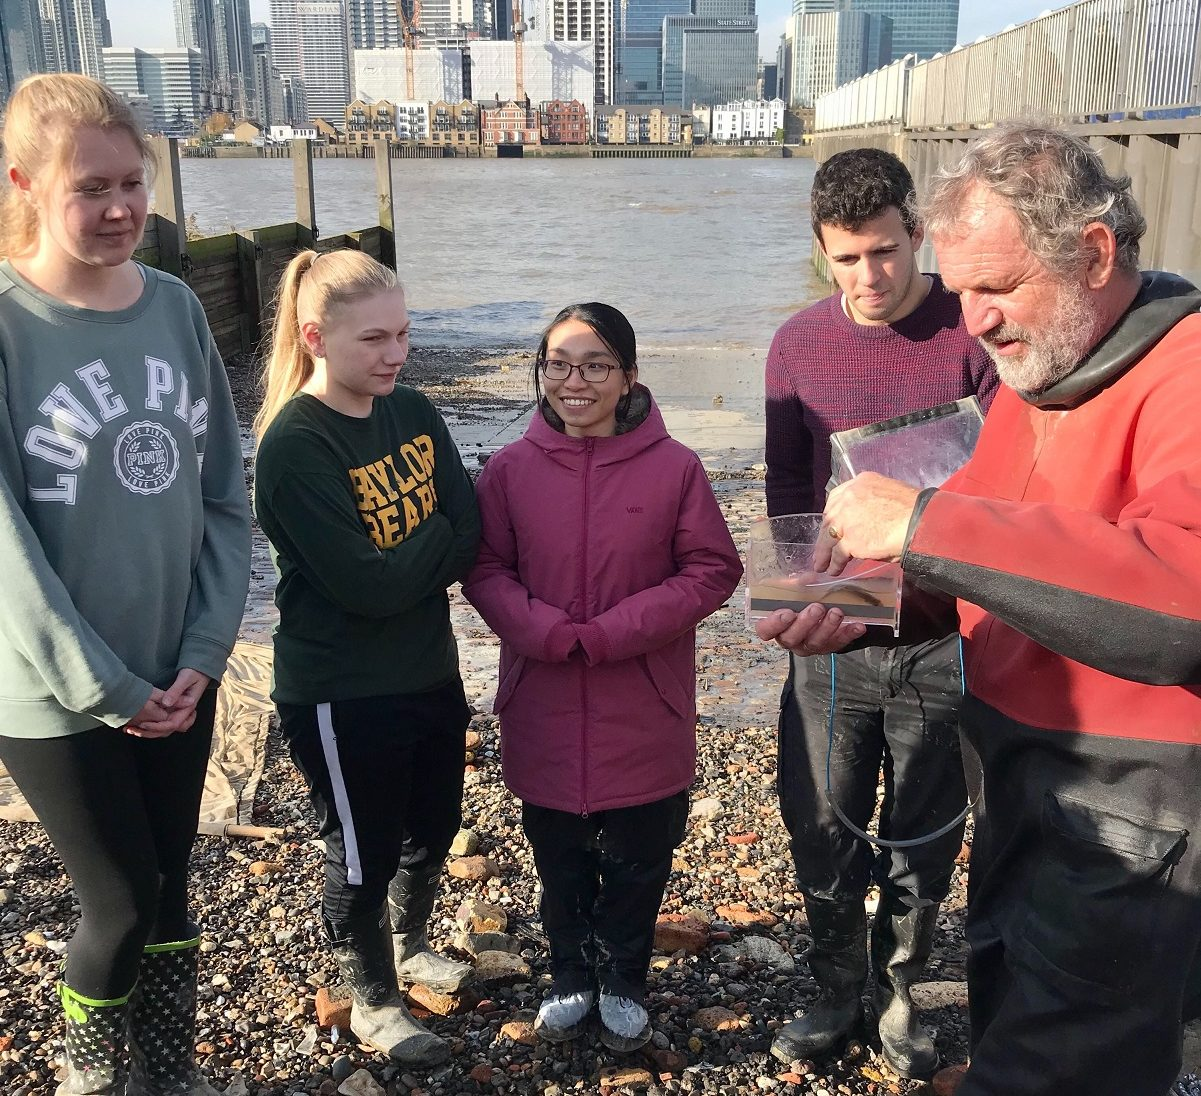 East Londoners can benefit from 'untapped asset' of capital's rivers